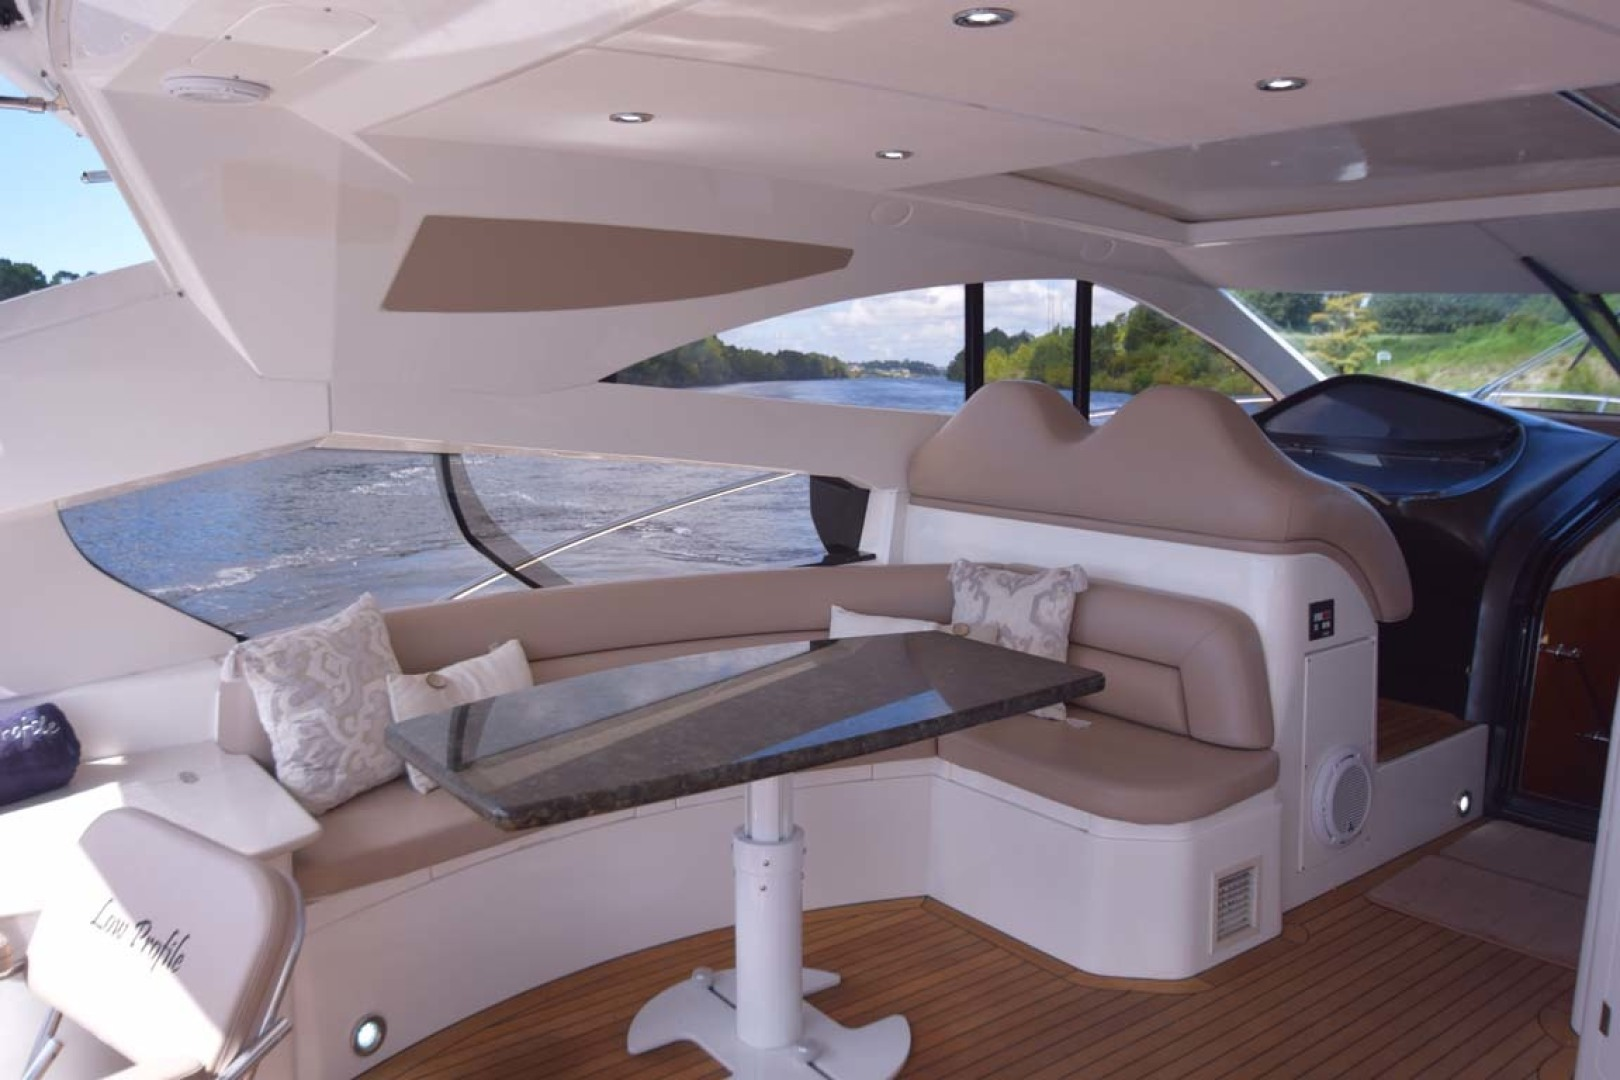 Sunseeker-Predator 2003-Low Profile PALM BEACH-Florida-United States-Midship Main Deck Table Flanked By Aft And Helm Companion Seating-1576376 | Thumbnail